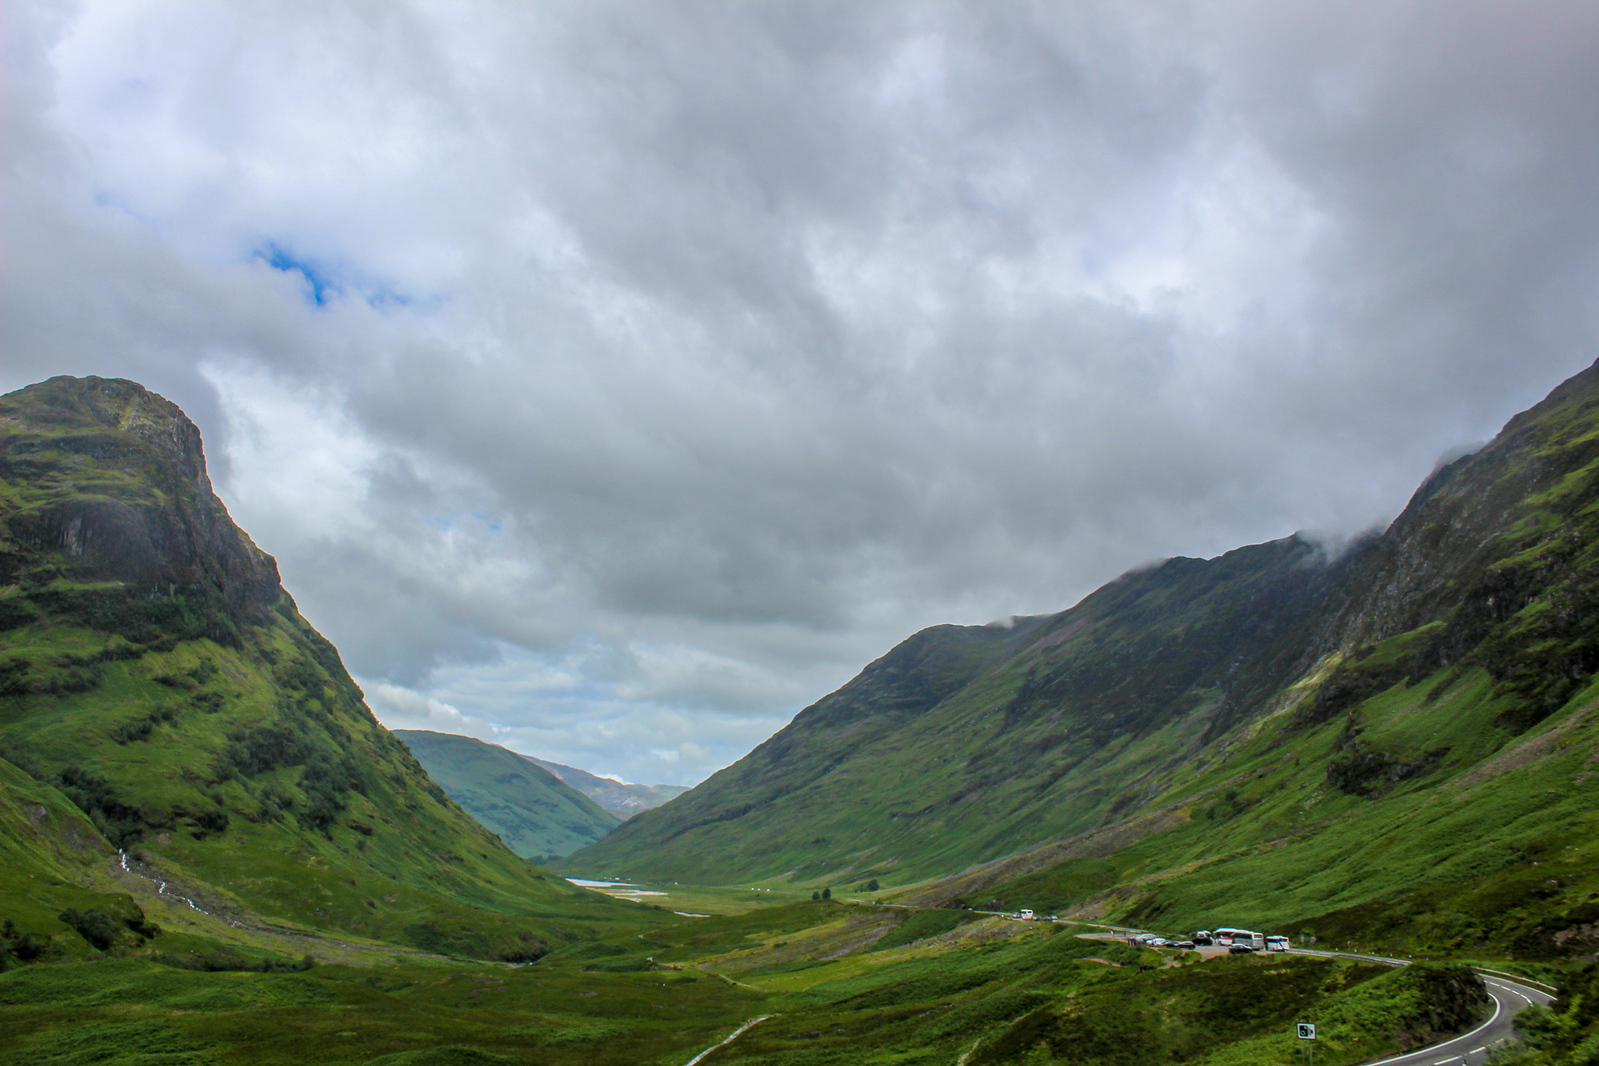 is scotland safe to travel? yes, but don't get lost in the highlands